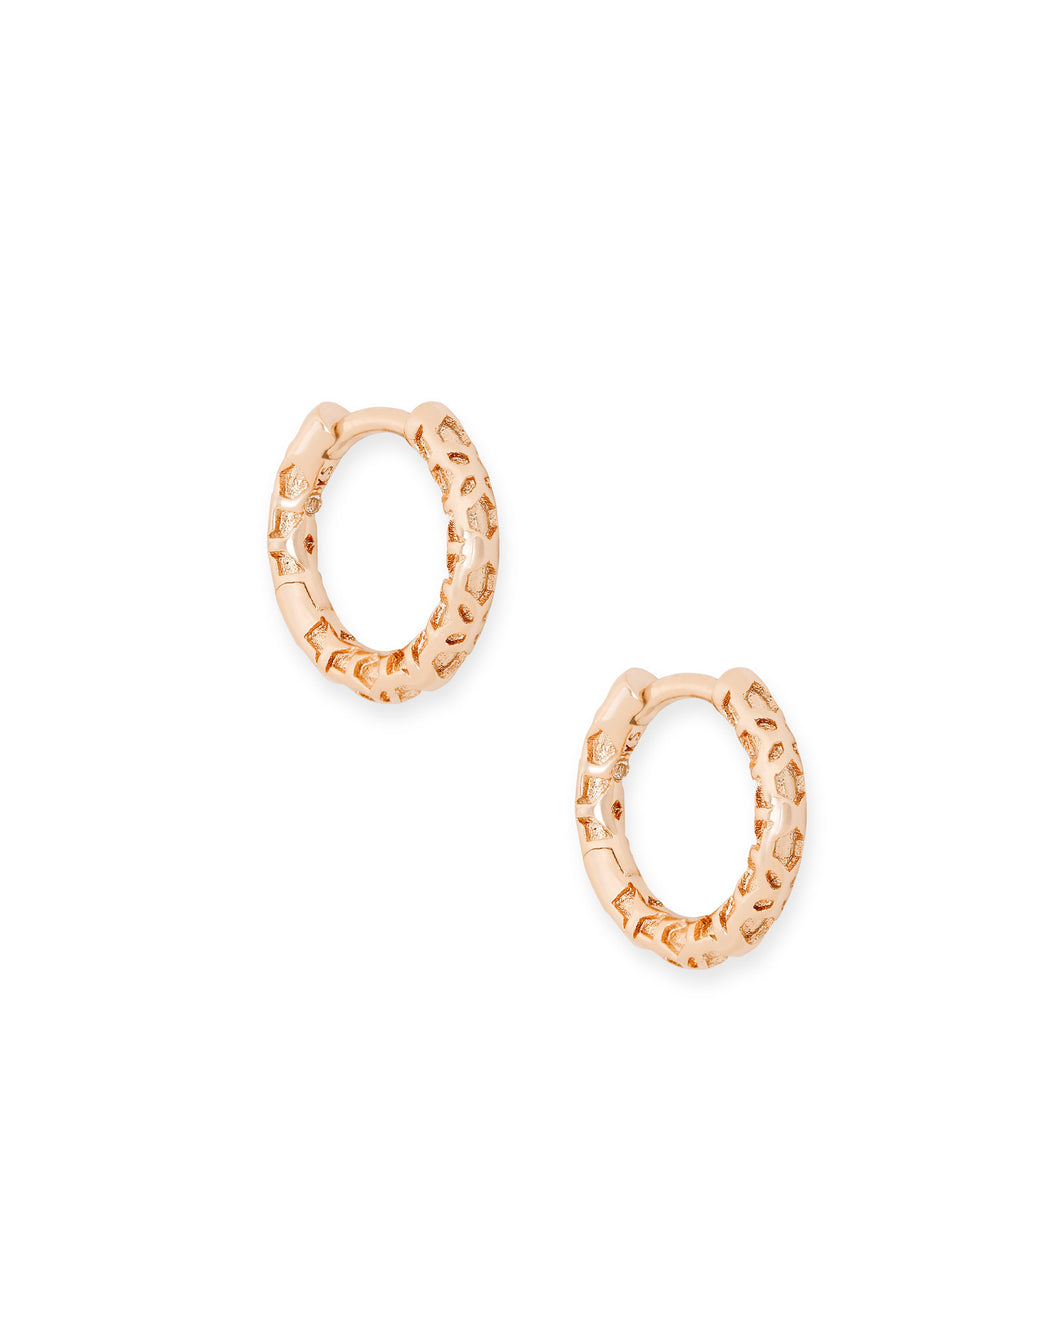 Kendra Scott Maggie Huggie Earrings in Rose Gold Filigree